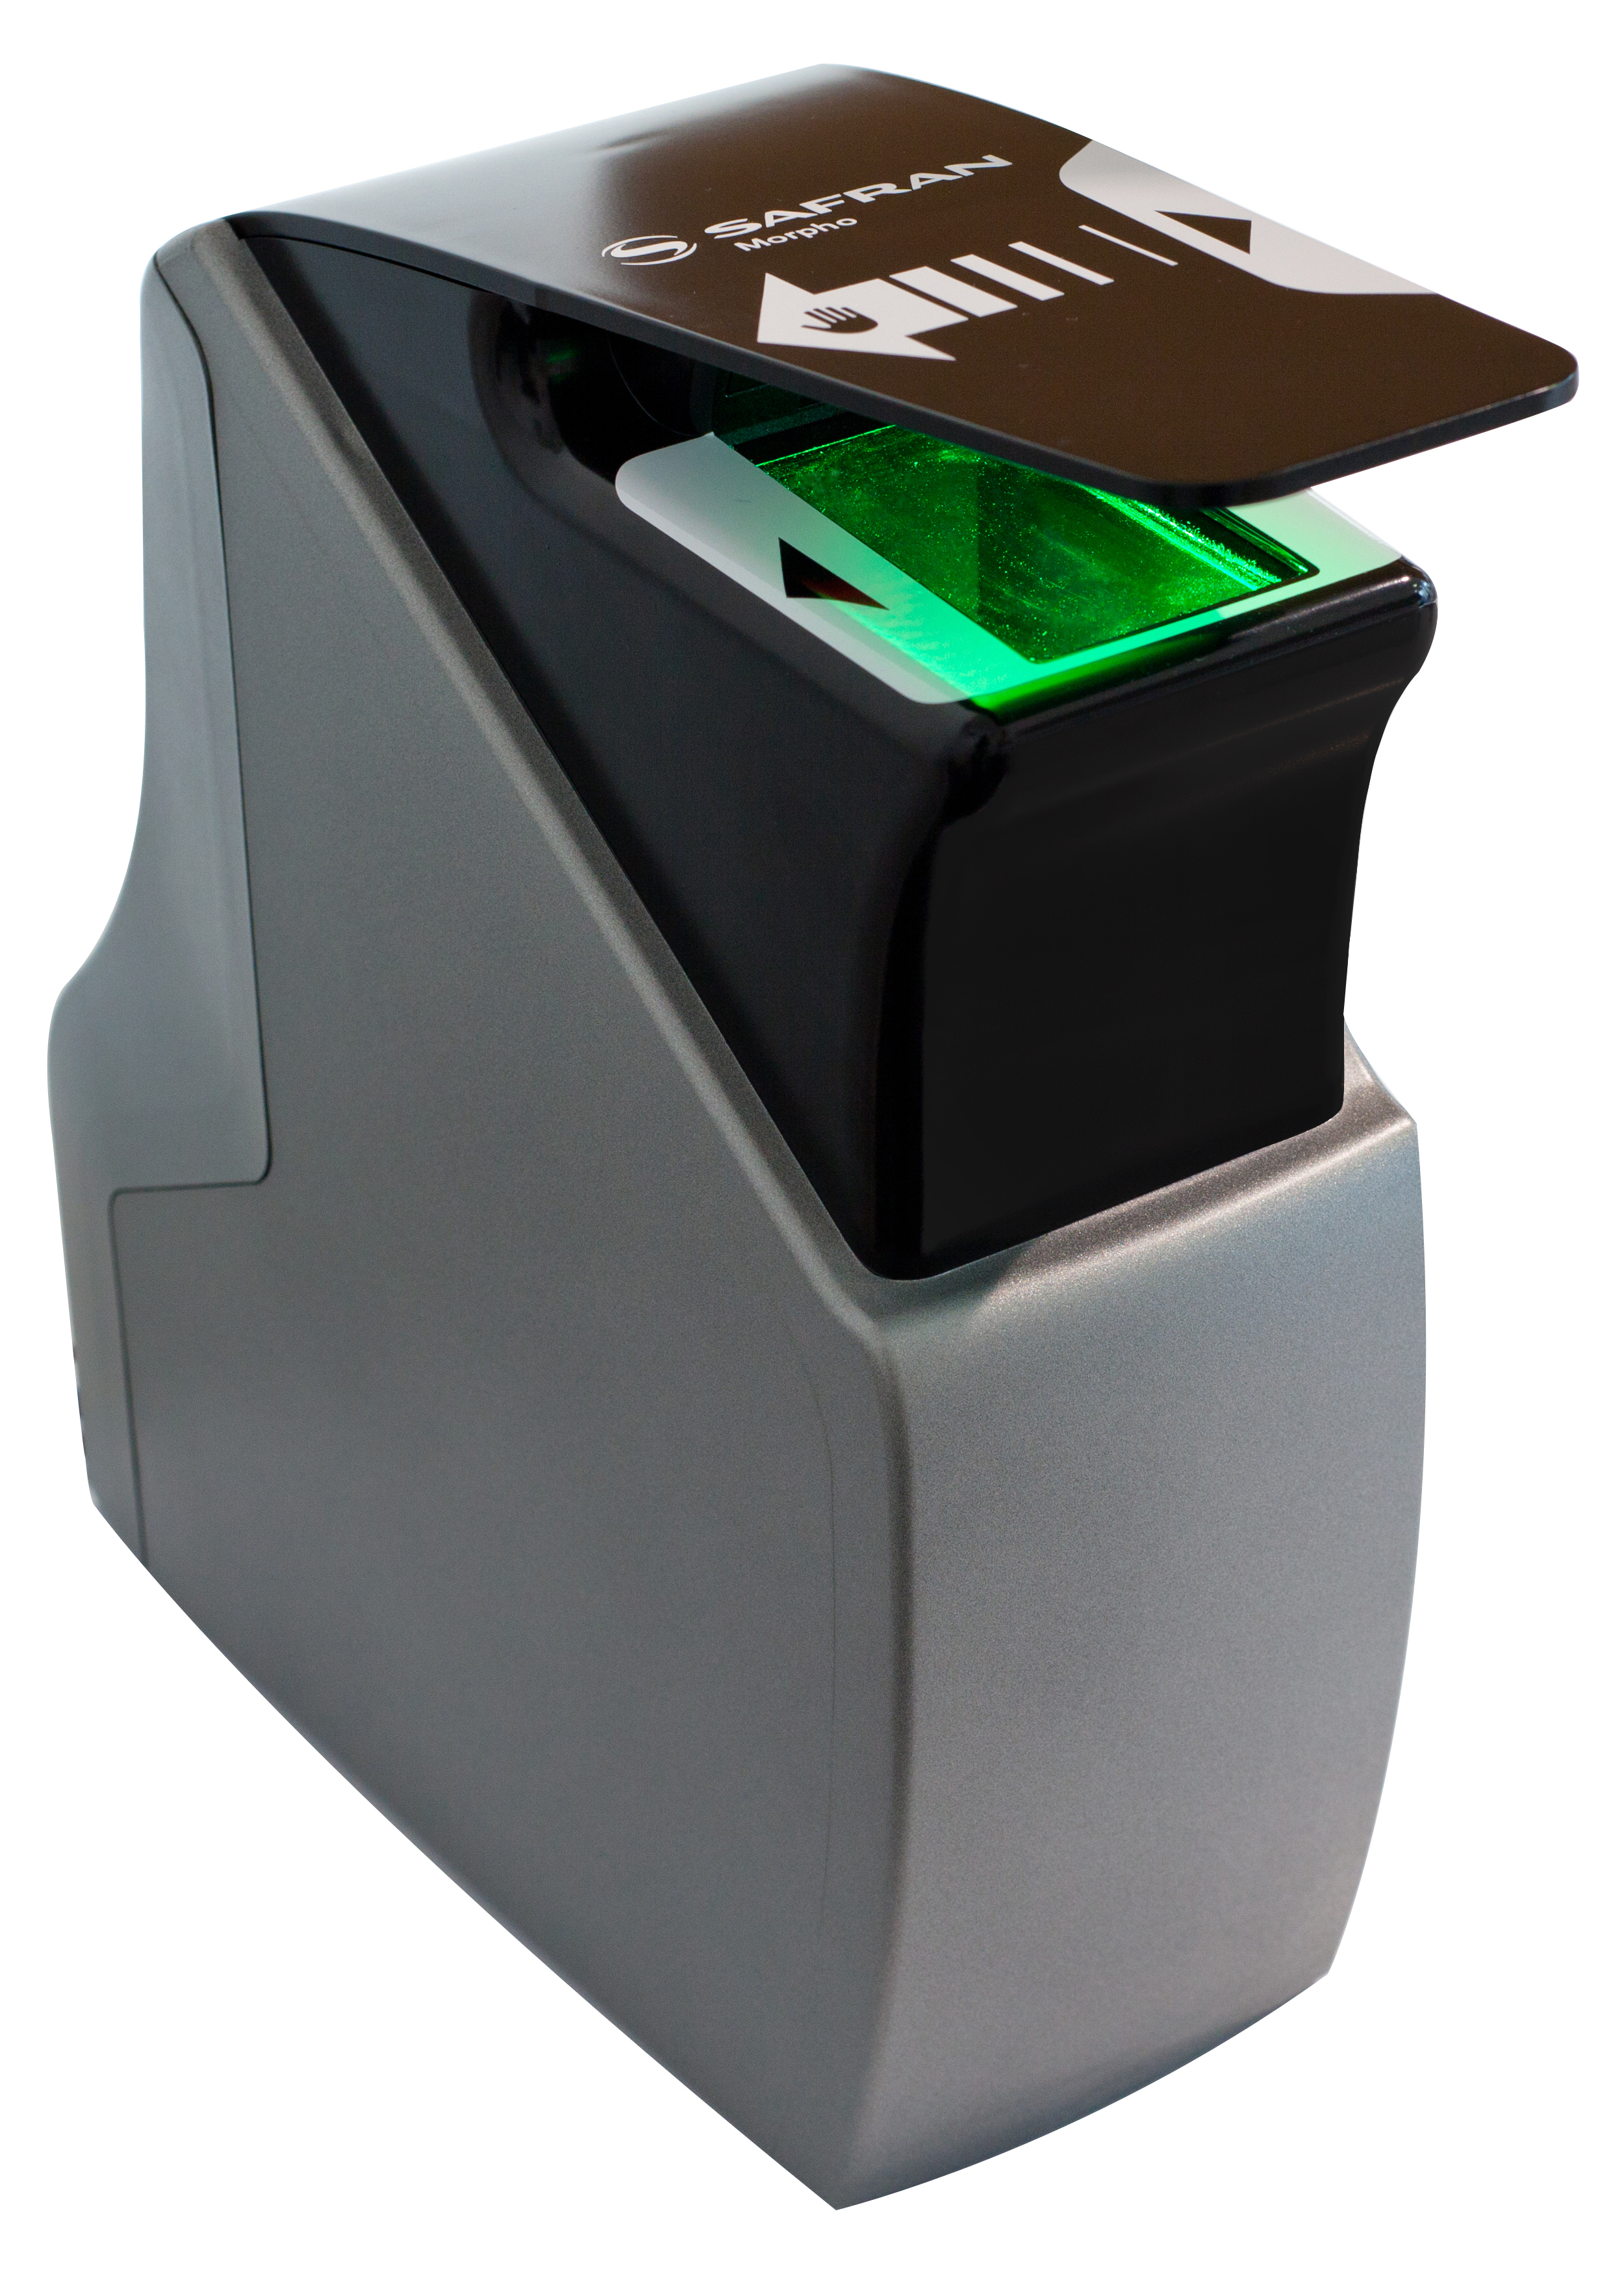 Finger On the Fly(r) is ideally suited for applications where high speed enrollment and matching, as well as convenience and security are a priority. (Photo: Business Wire)